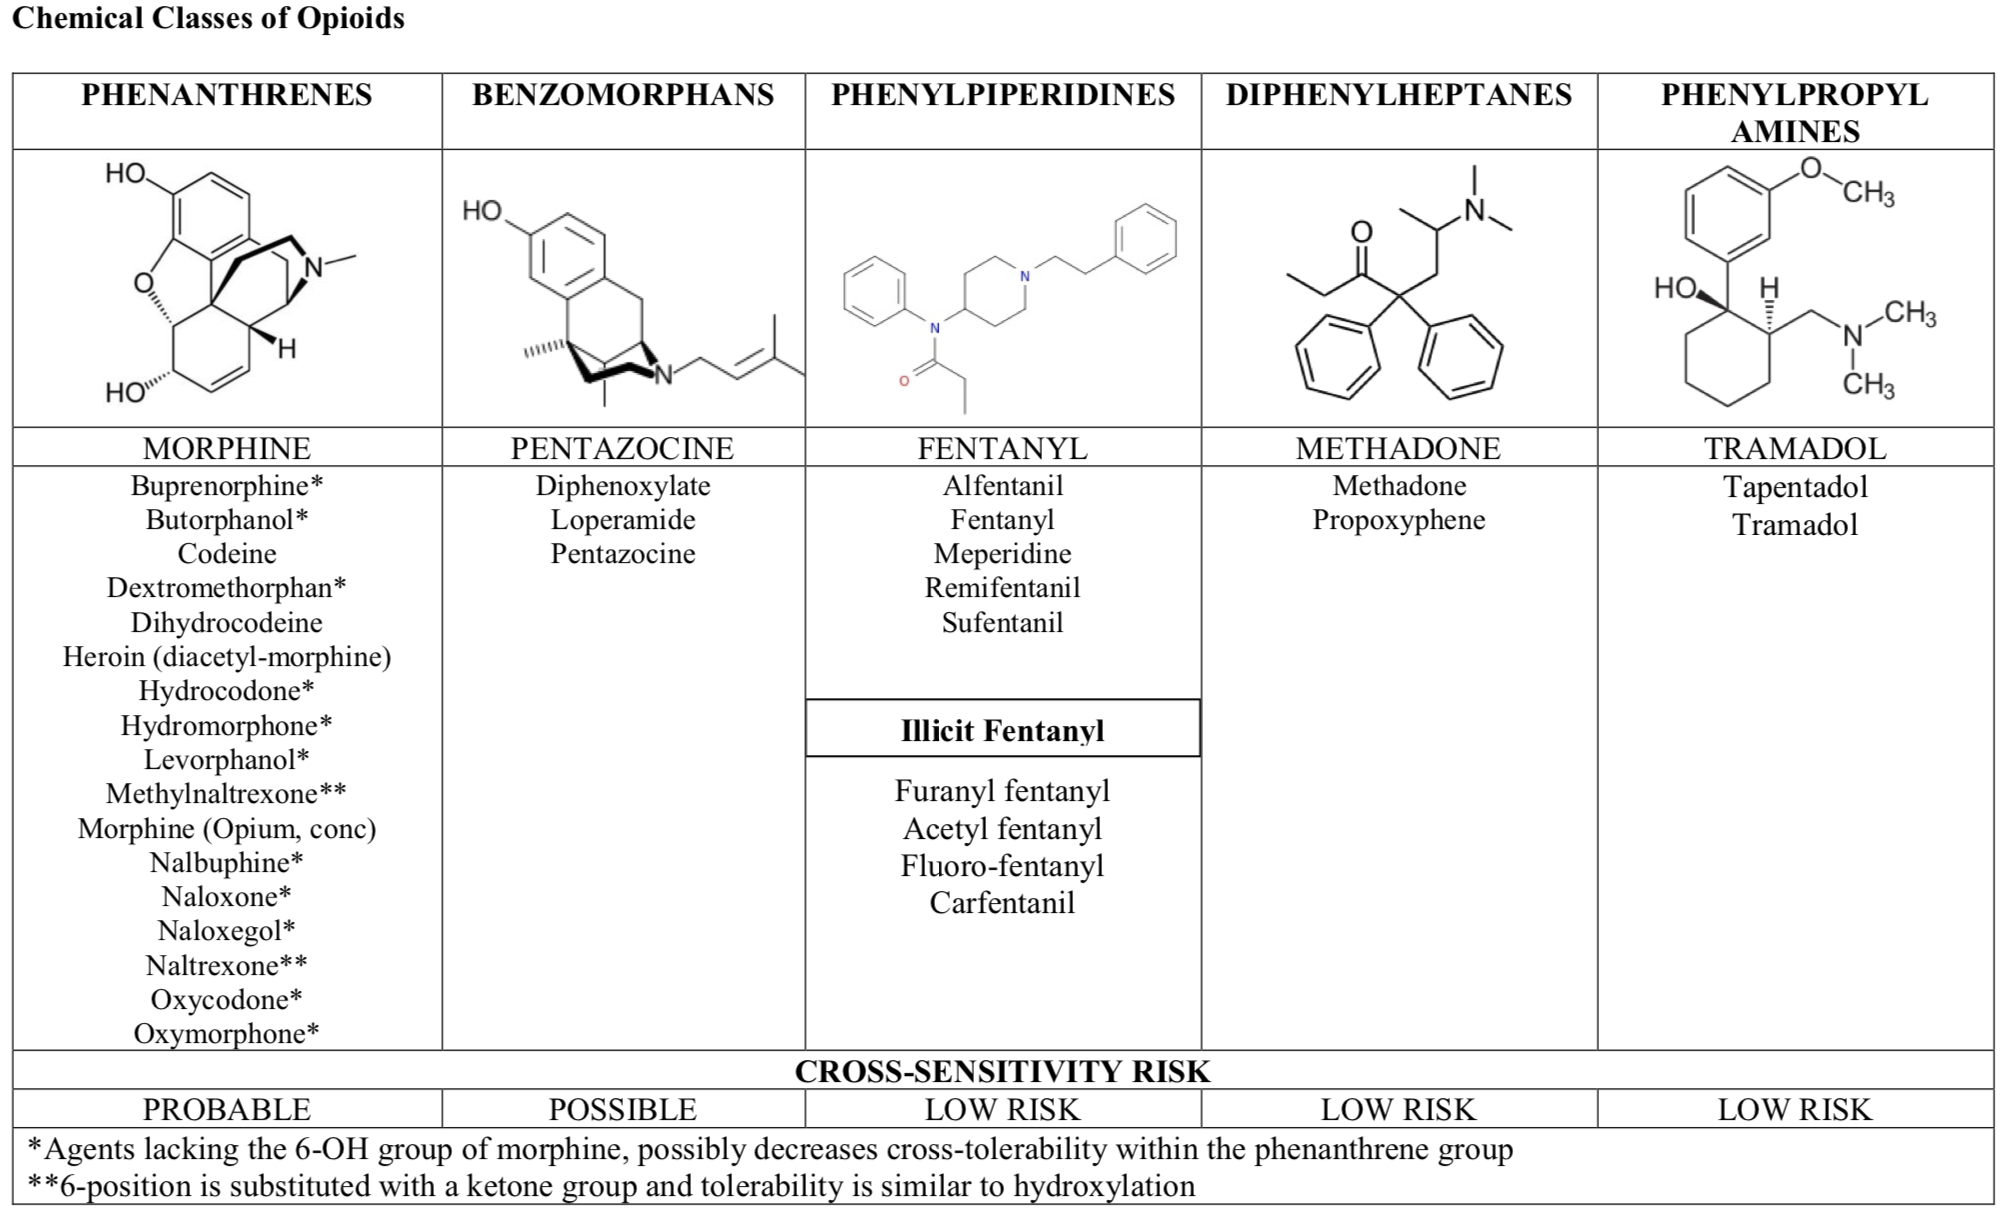 Table 4: Classes of opioids grouped by chemical structure and risk of cross reactivity.